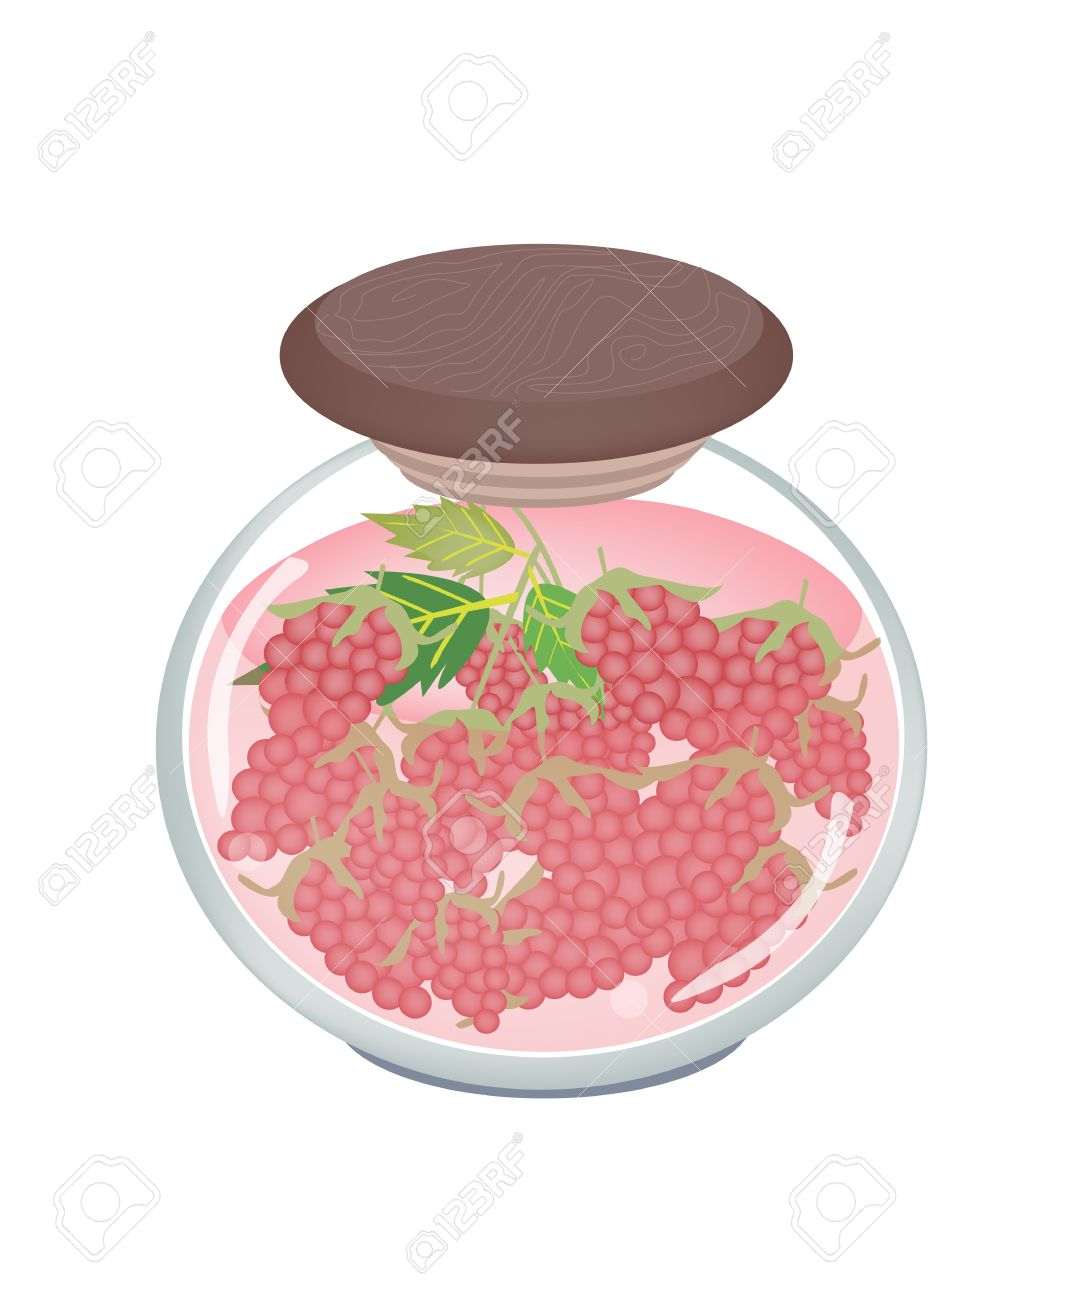 Fruit, An Illustration Of Preserved Raspberries, Raspberry Jam.